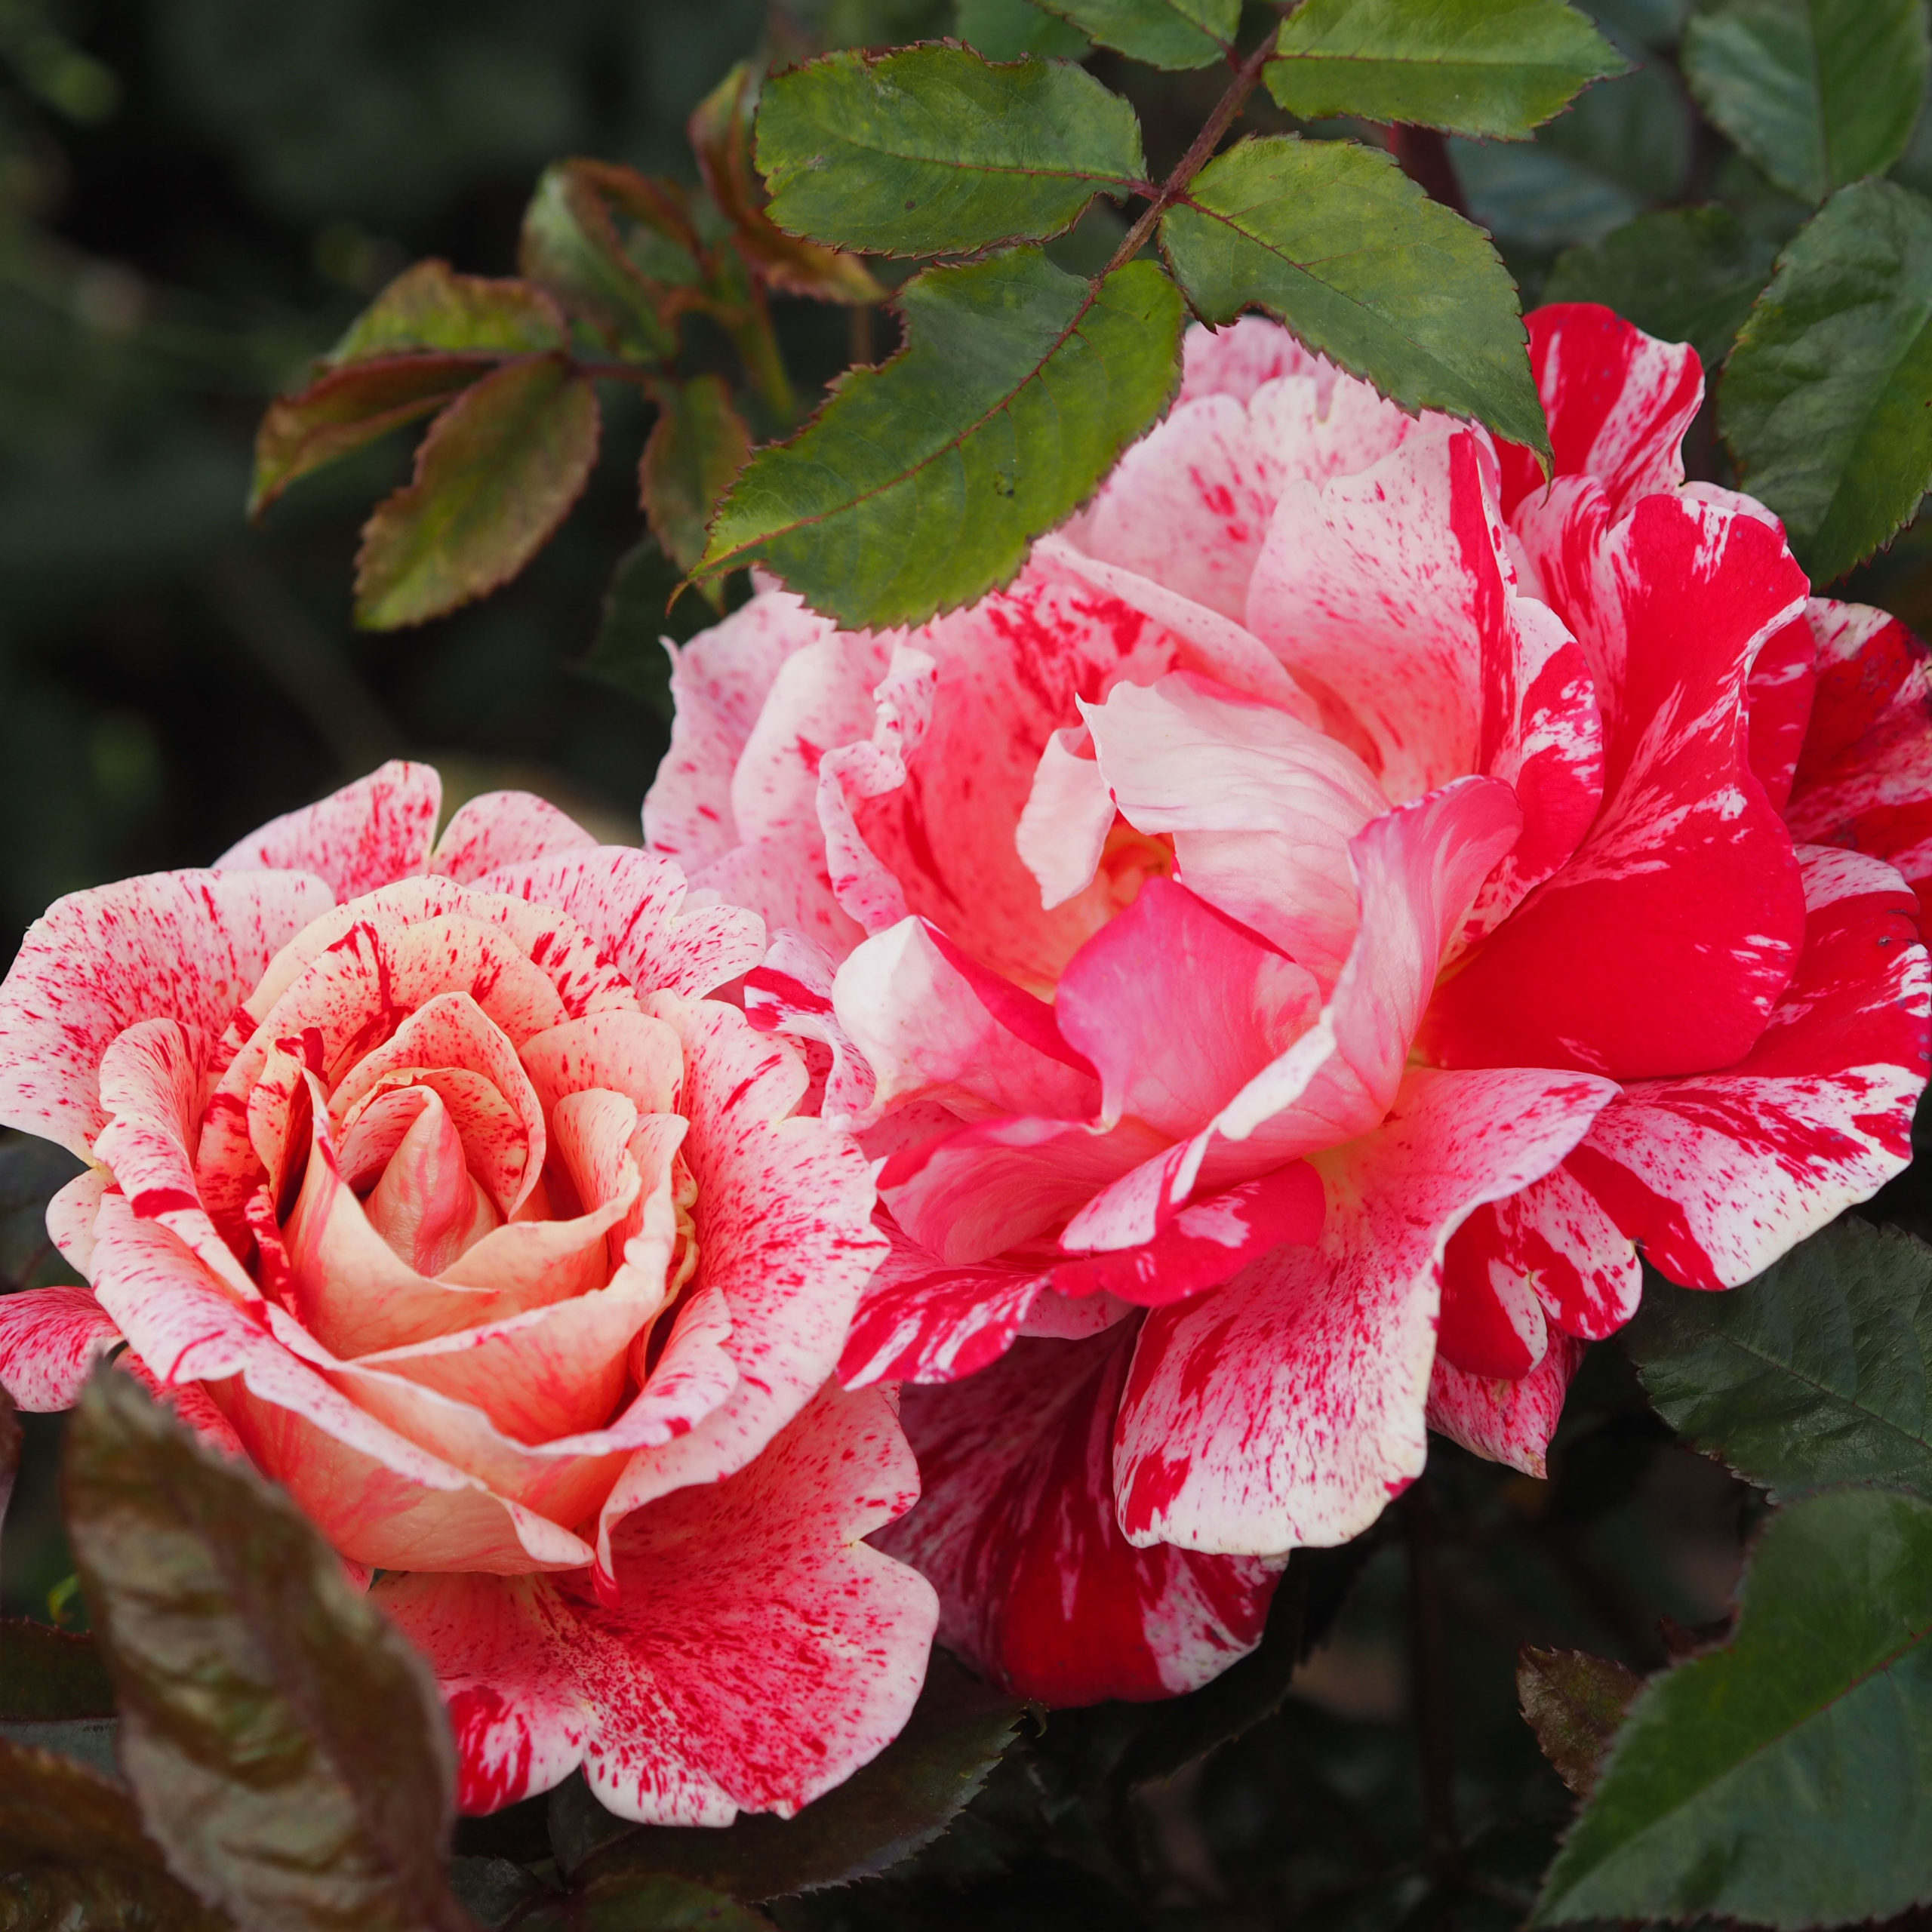 Planting Roses into Your Garden